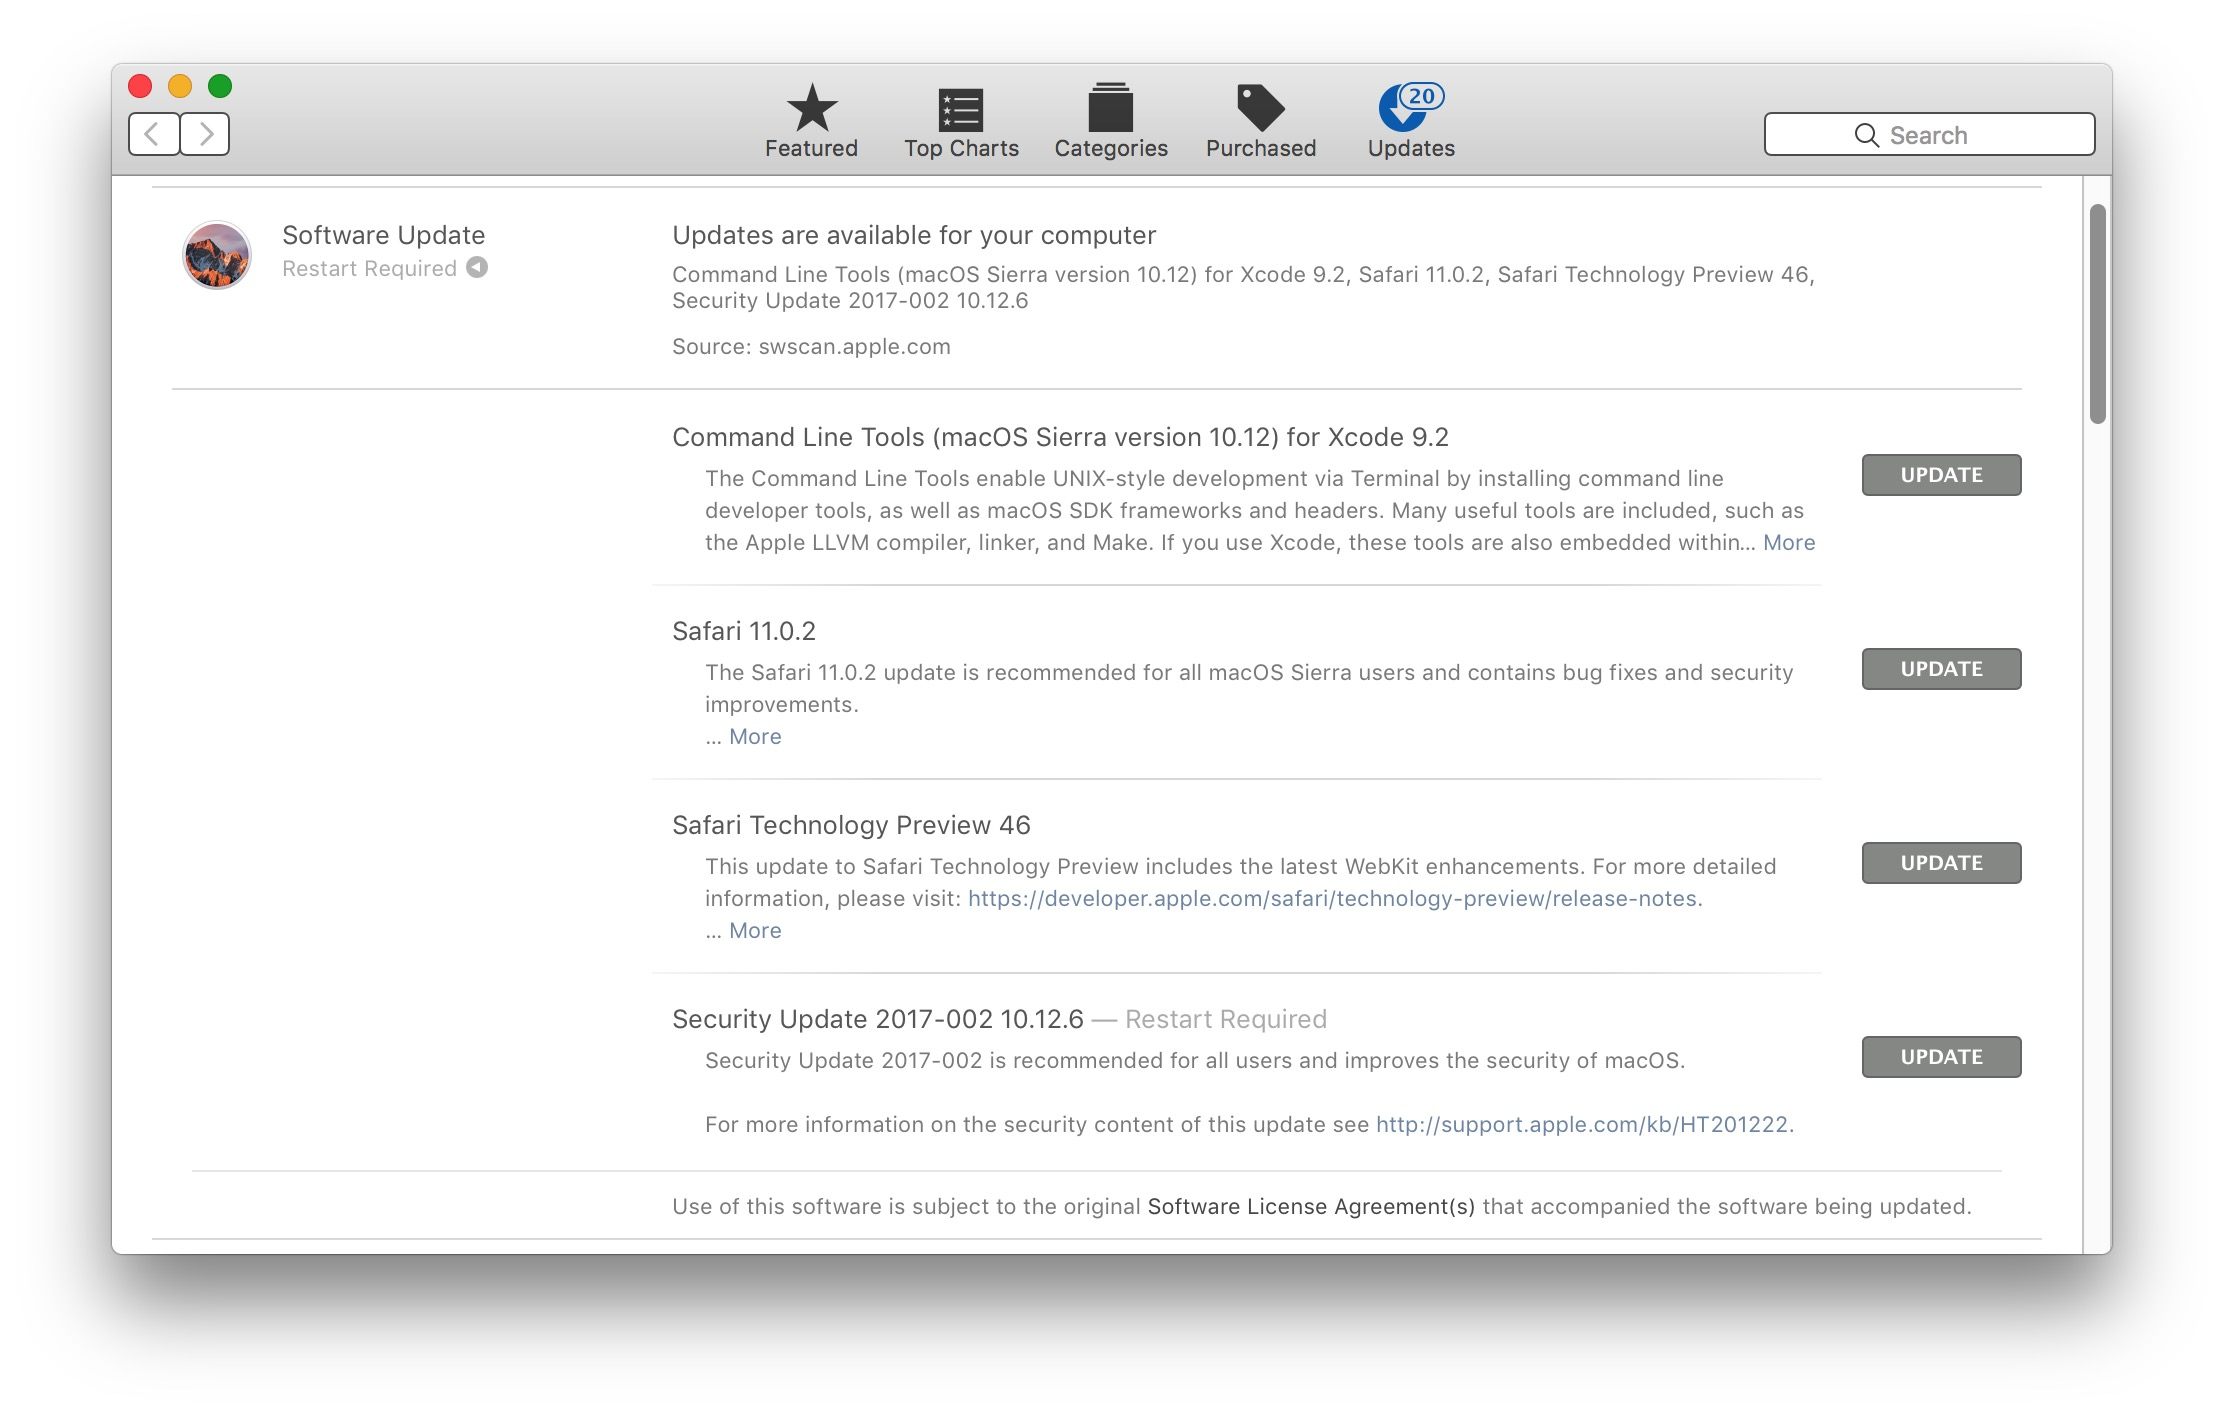 MacOS Software Updates to Safari 11.0.2 available for security